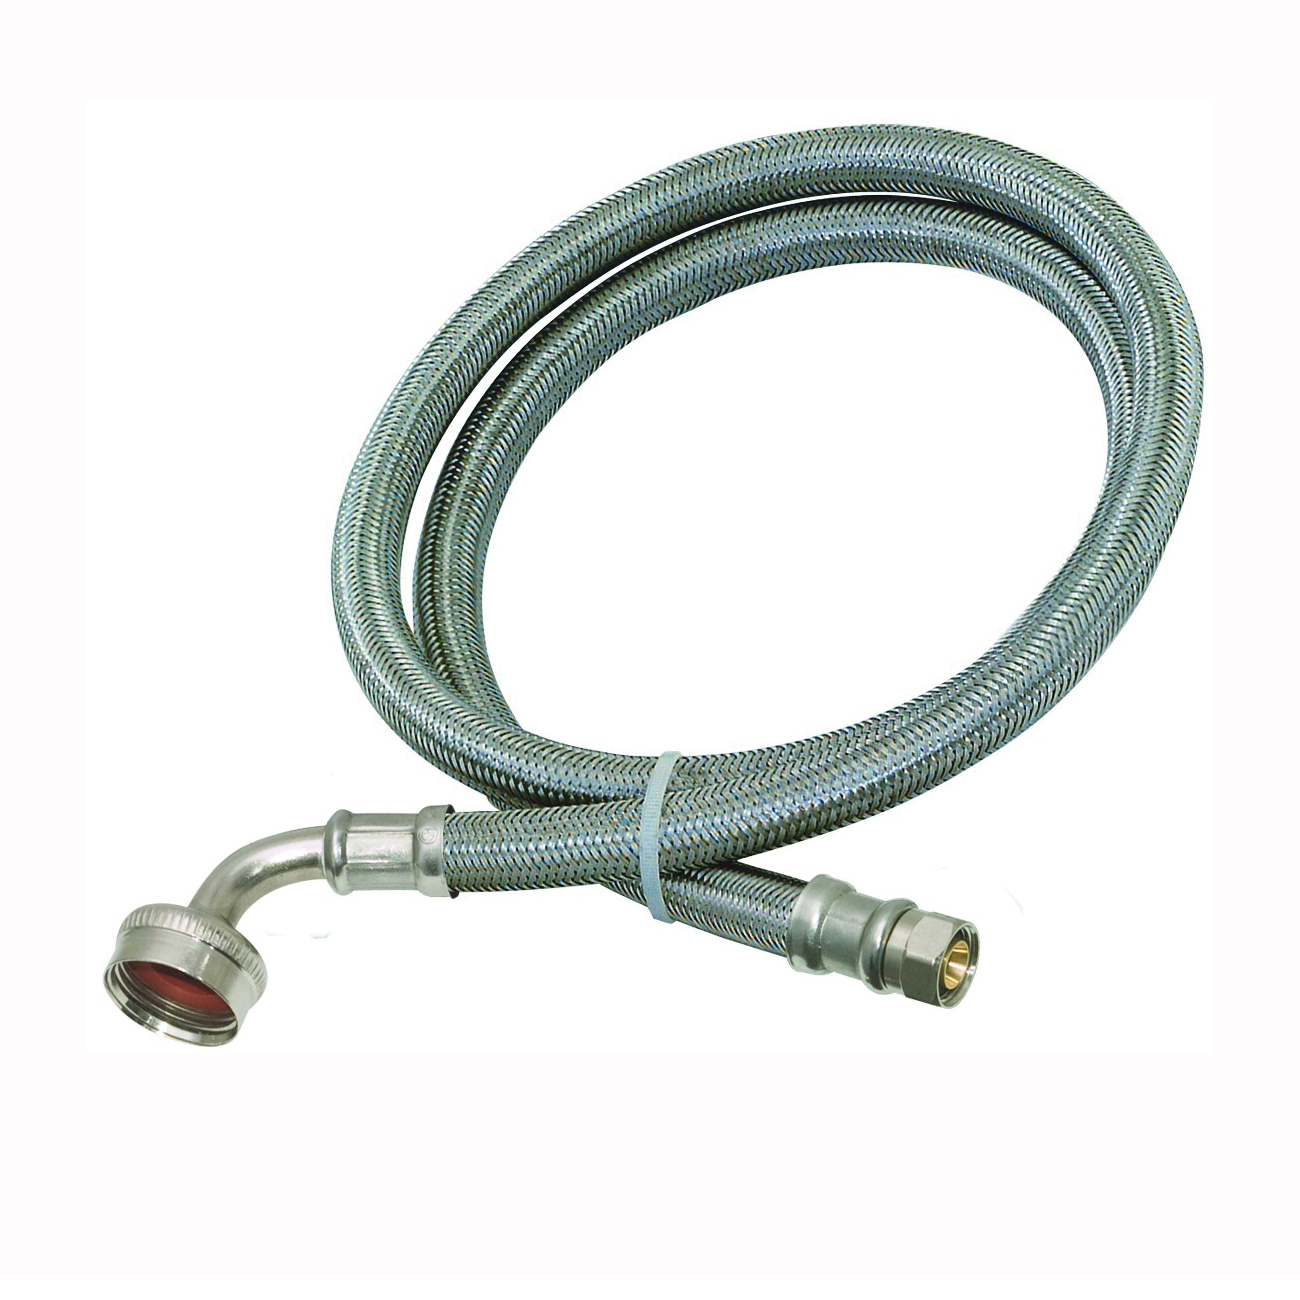 Picture of EZ-FLO 41043 Dishwasher Connector Hose, 3/4 in Inlet, 3/8 in Outlet, 6 ft L